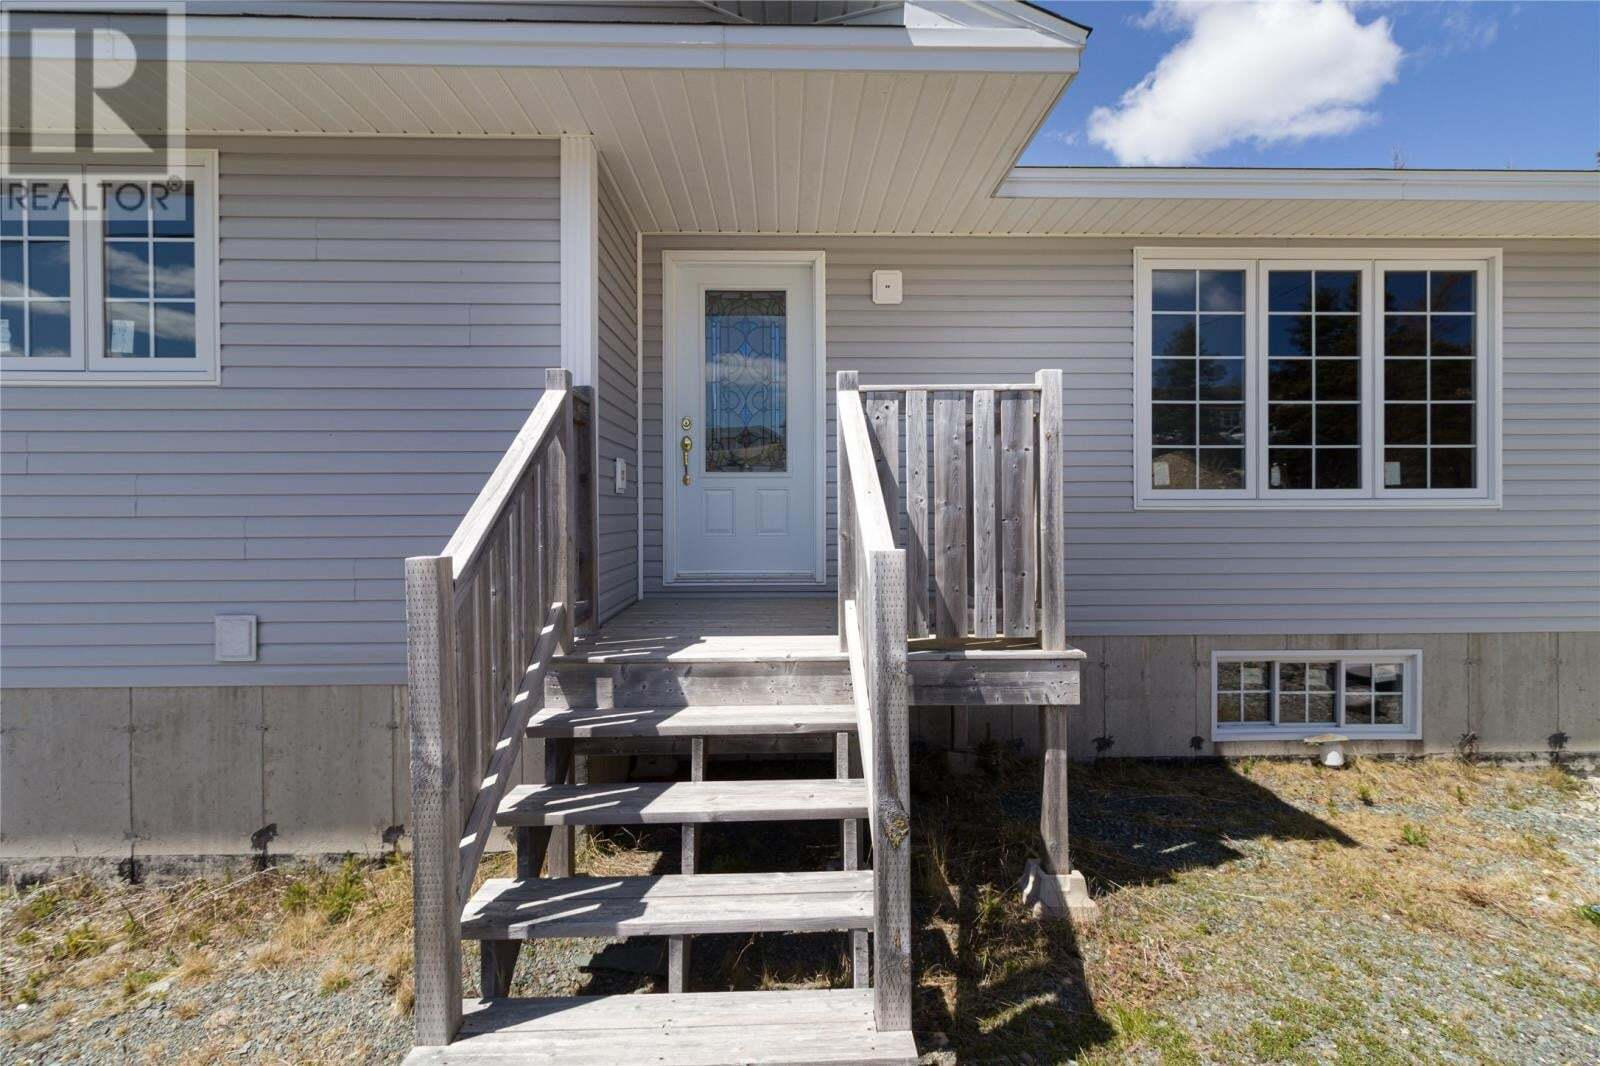 House for sale at 69 Keatings Rd Brigus Newfoundland - MLS: 1214264